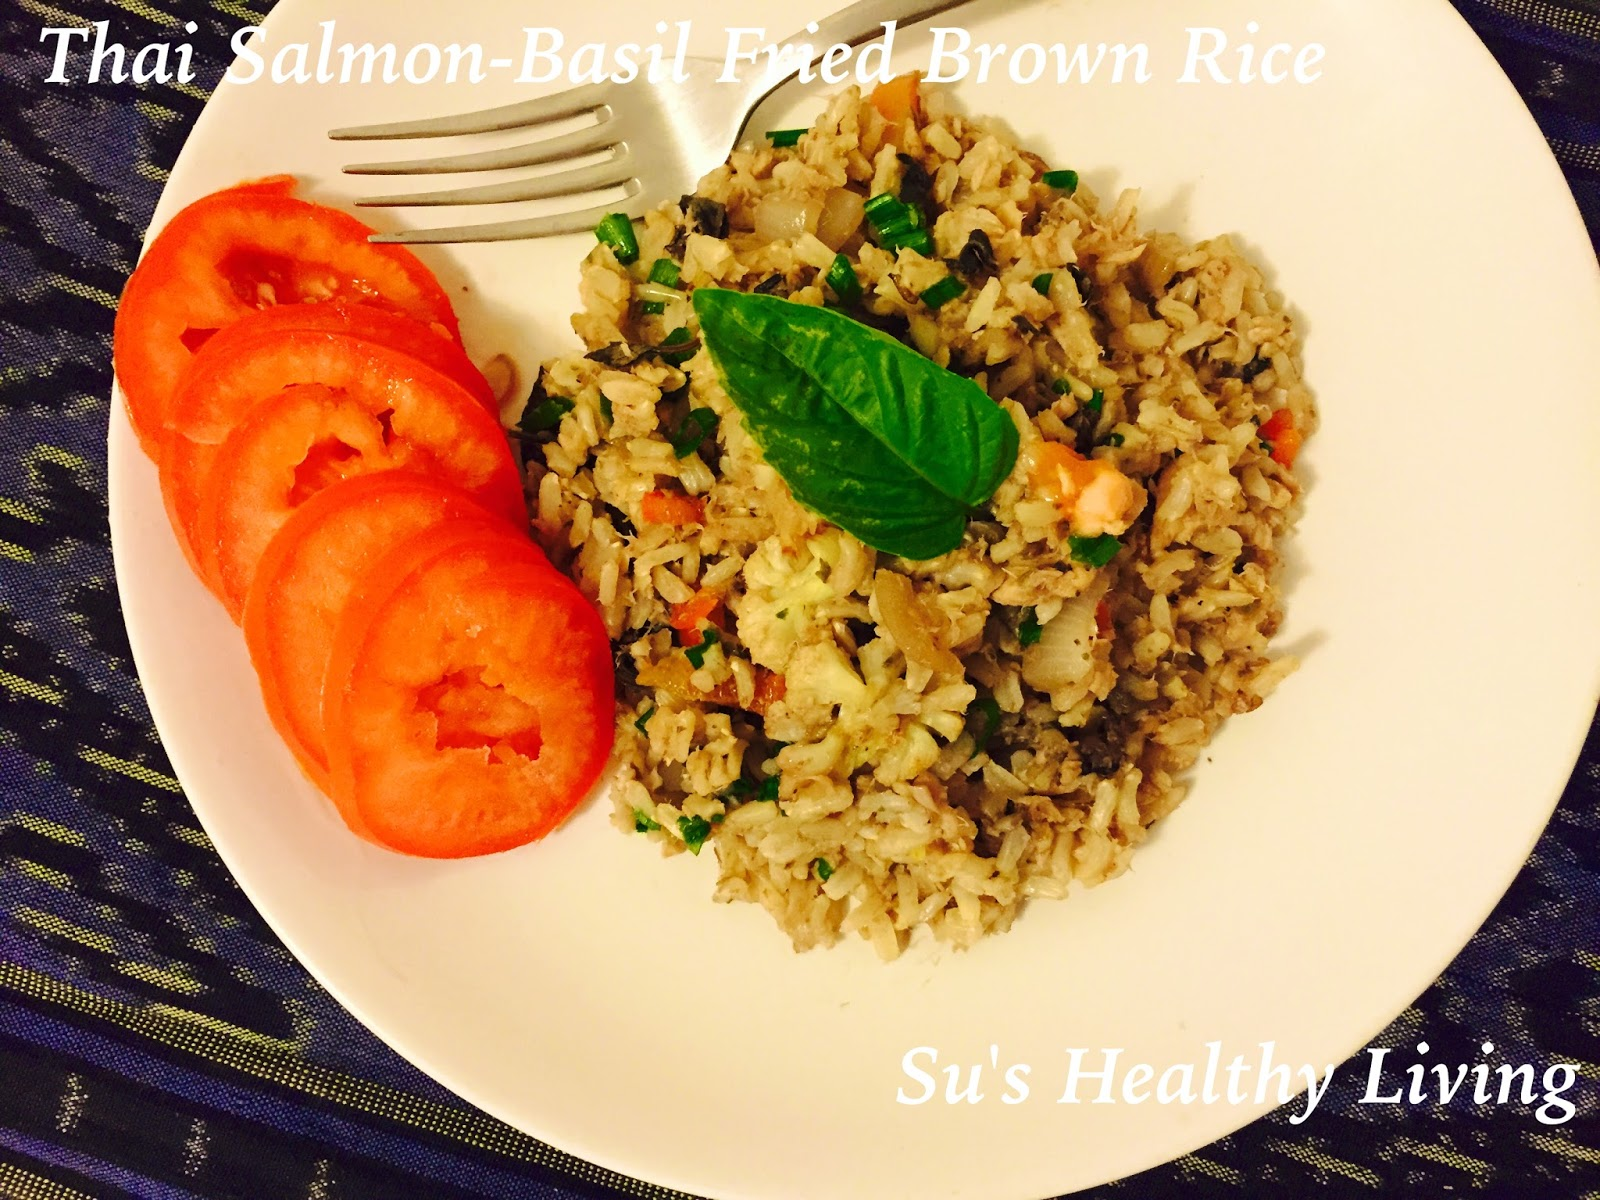 Now Fold In The Cooked Brown Rice Mix Thoroughly Su's Healthy Living: Thai  Salmonbasil Fried